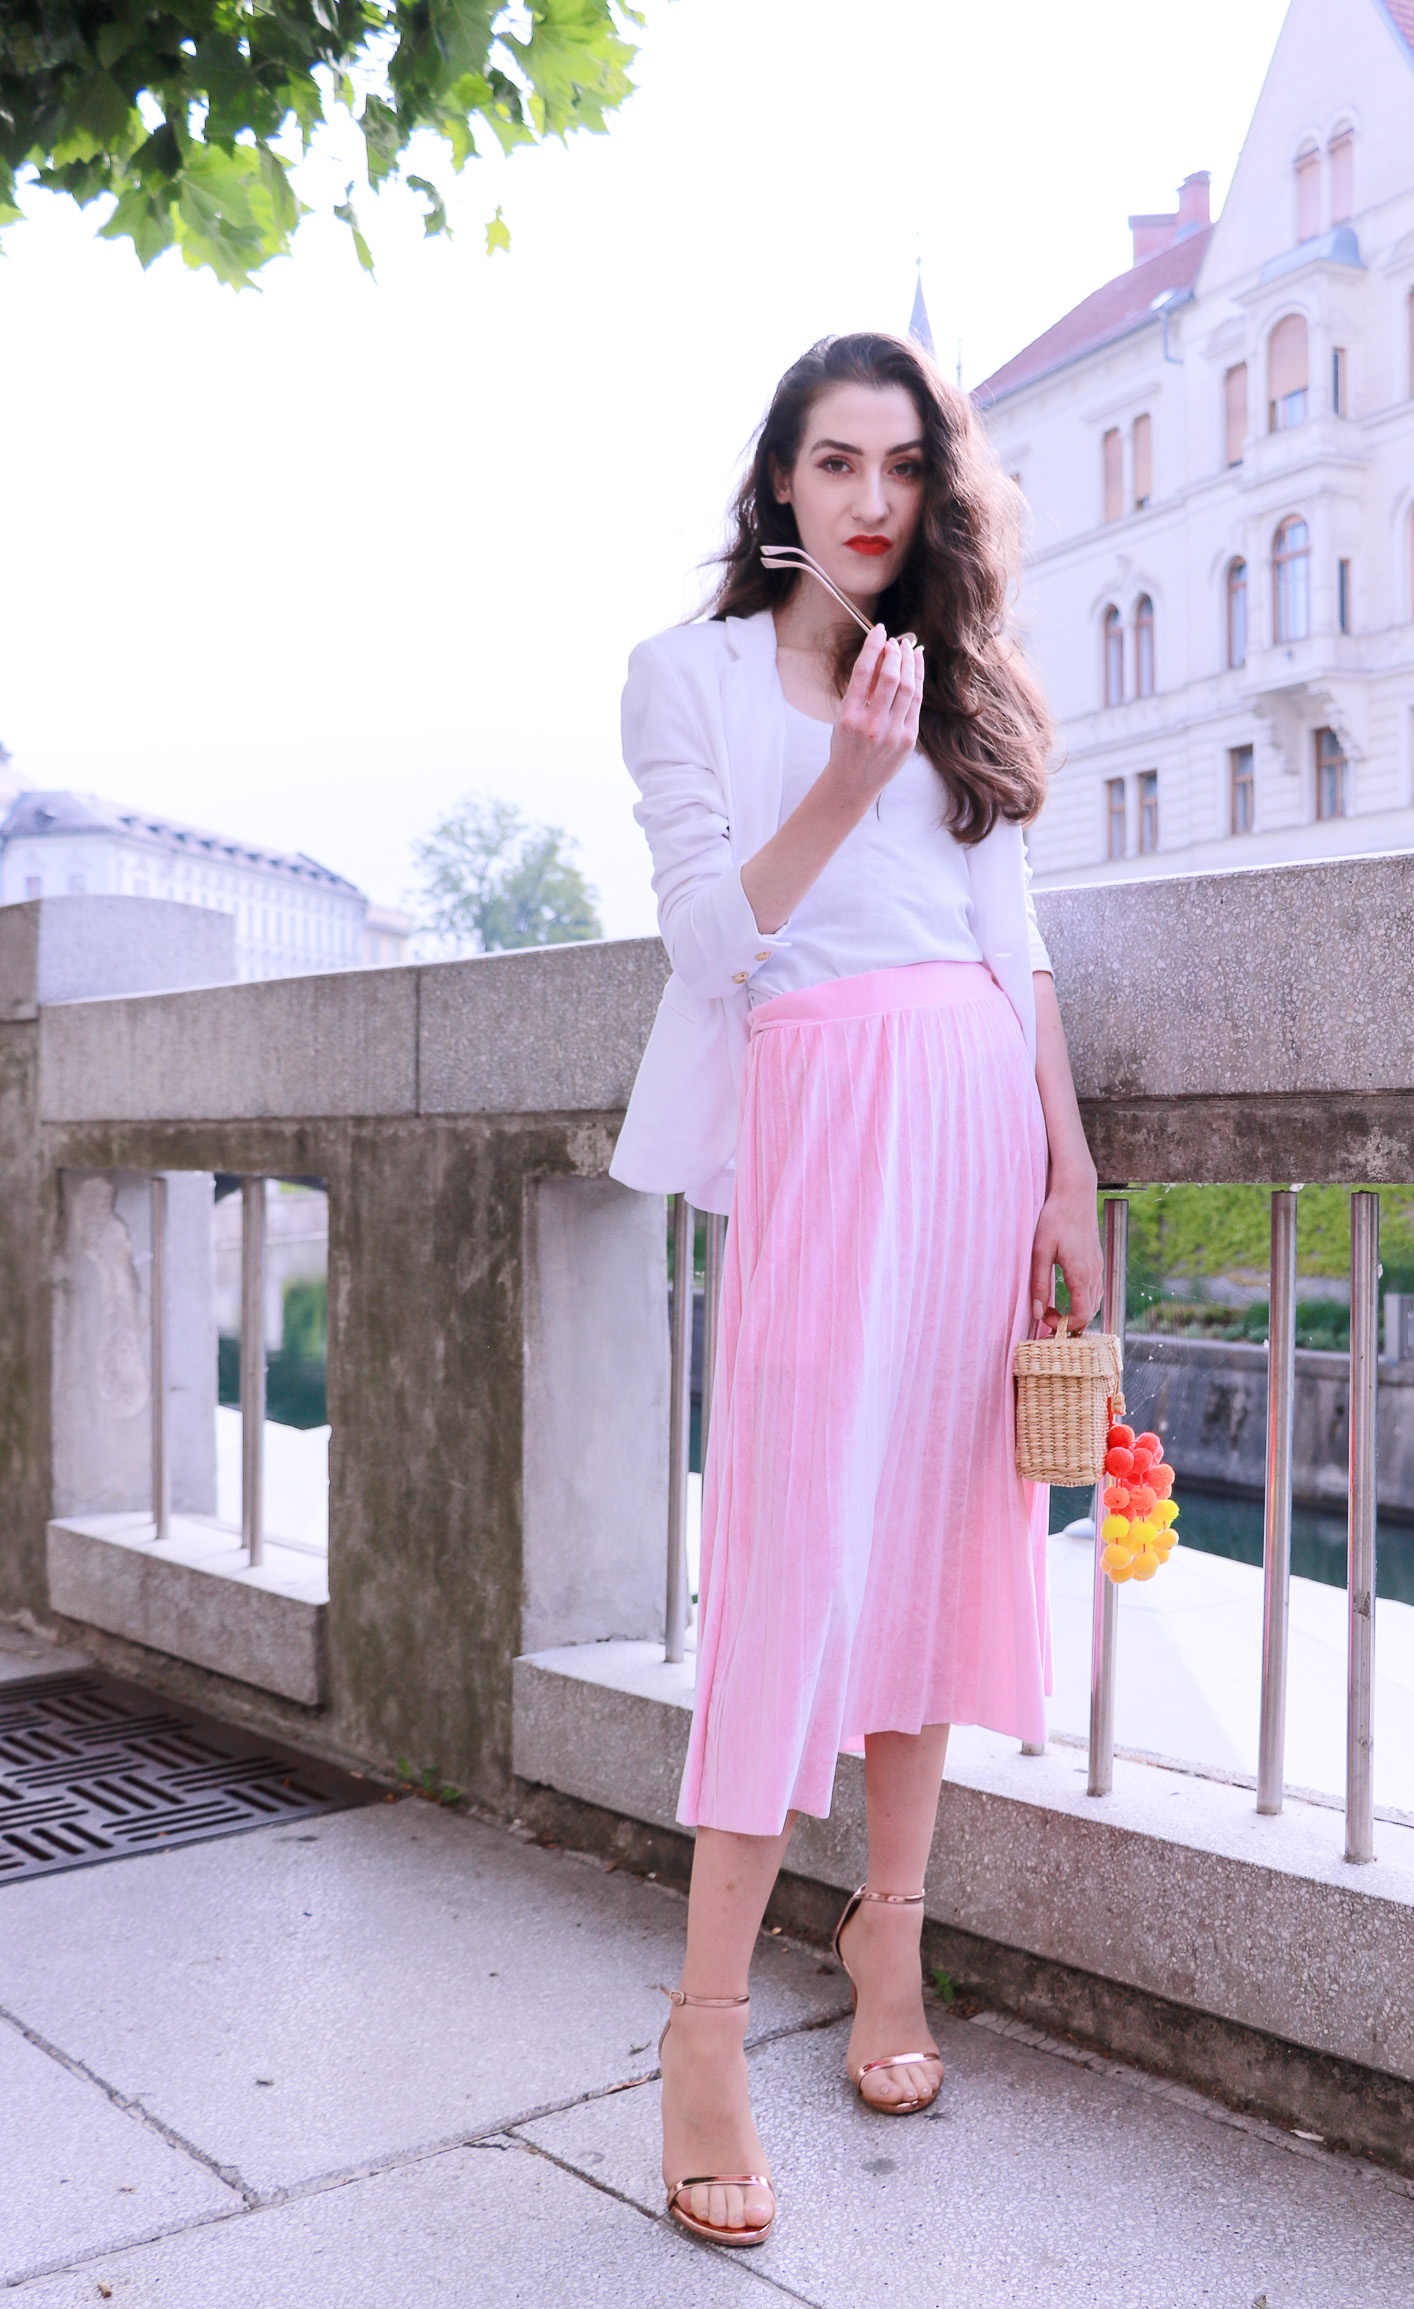 Fashion blogger Veronika Lipar of Brunette From Wall Street dressed in chic pink midi skirt with pleats, Sunday Somewhere round sunglasses, metallic sandals from Stuart Weitzman, and raffia basket bag from Nannancay